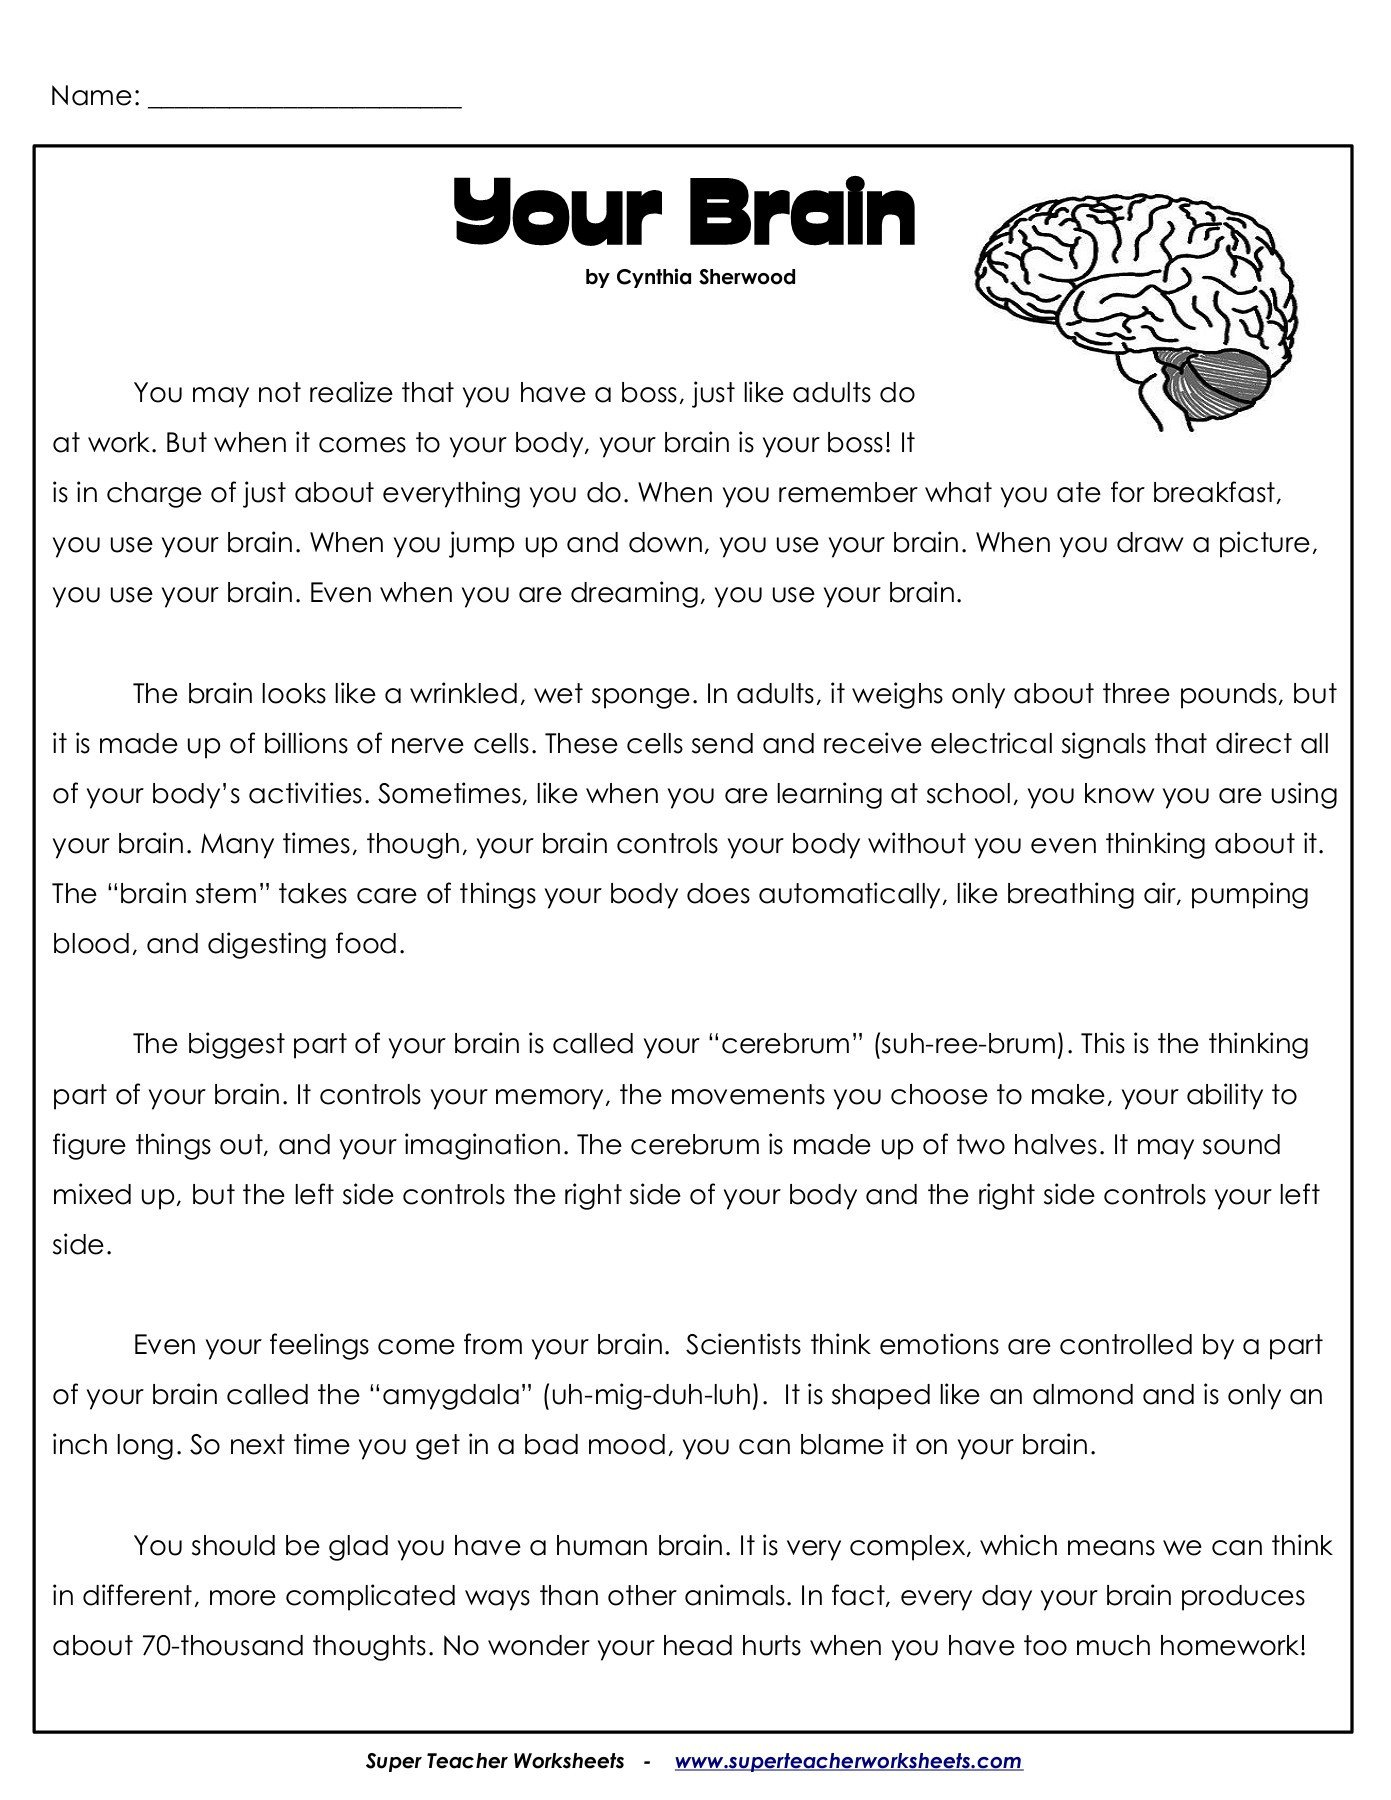 Super Teacher Worksheets Free Account Your Brain Superteacherworksheets